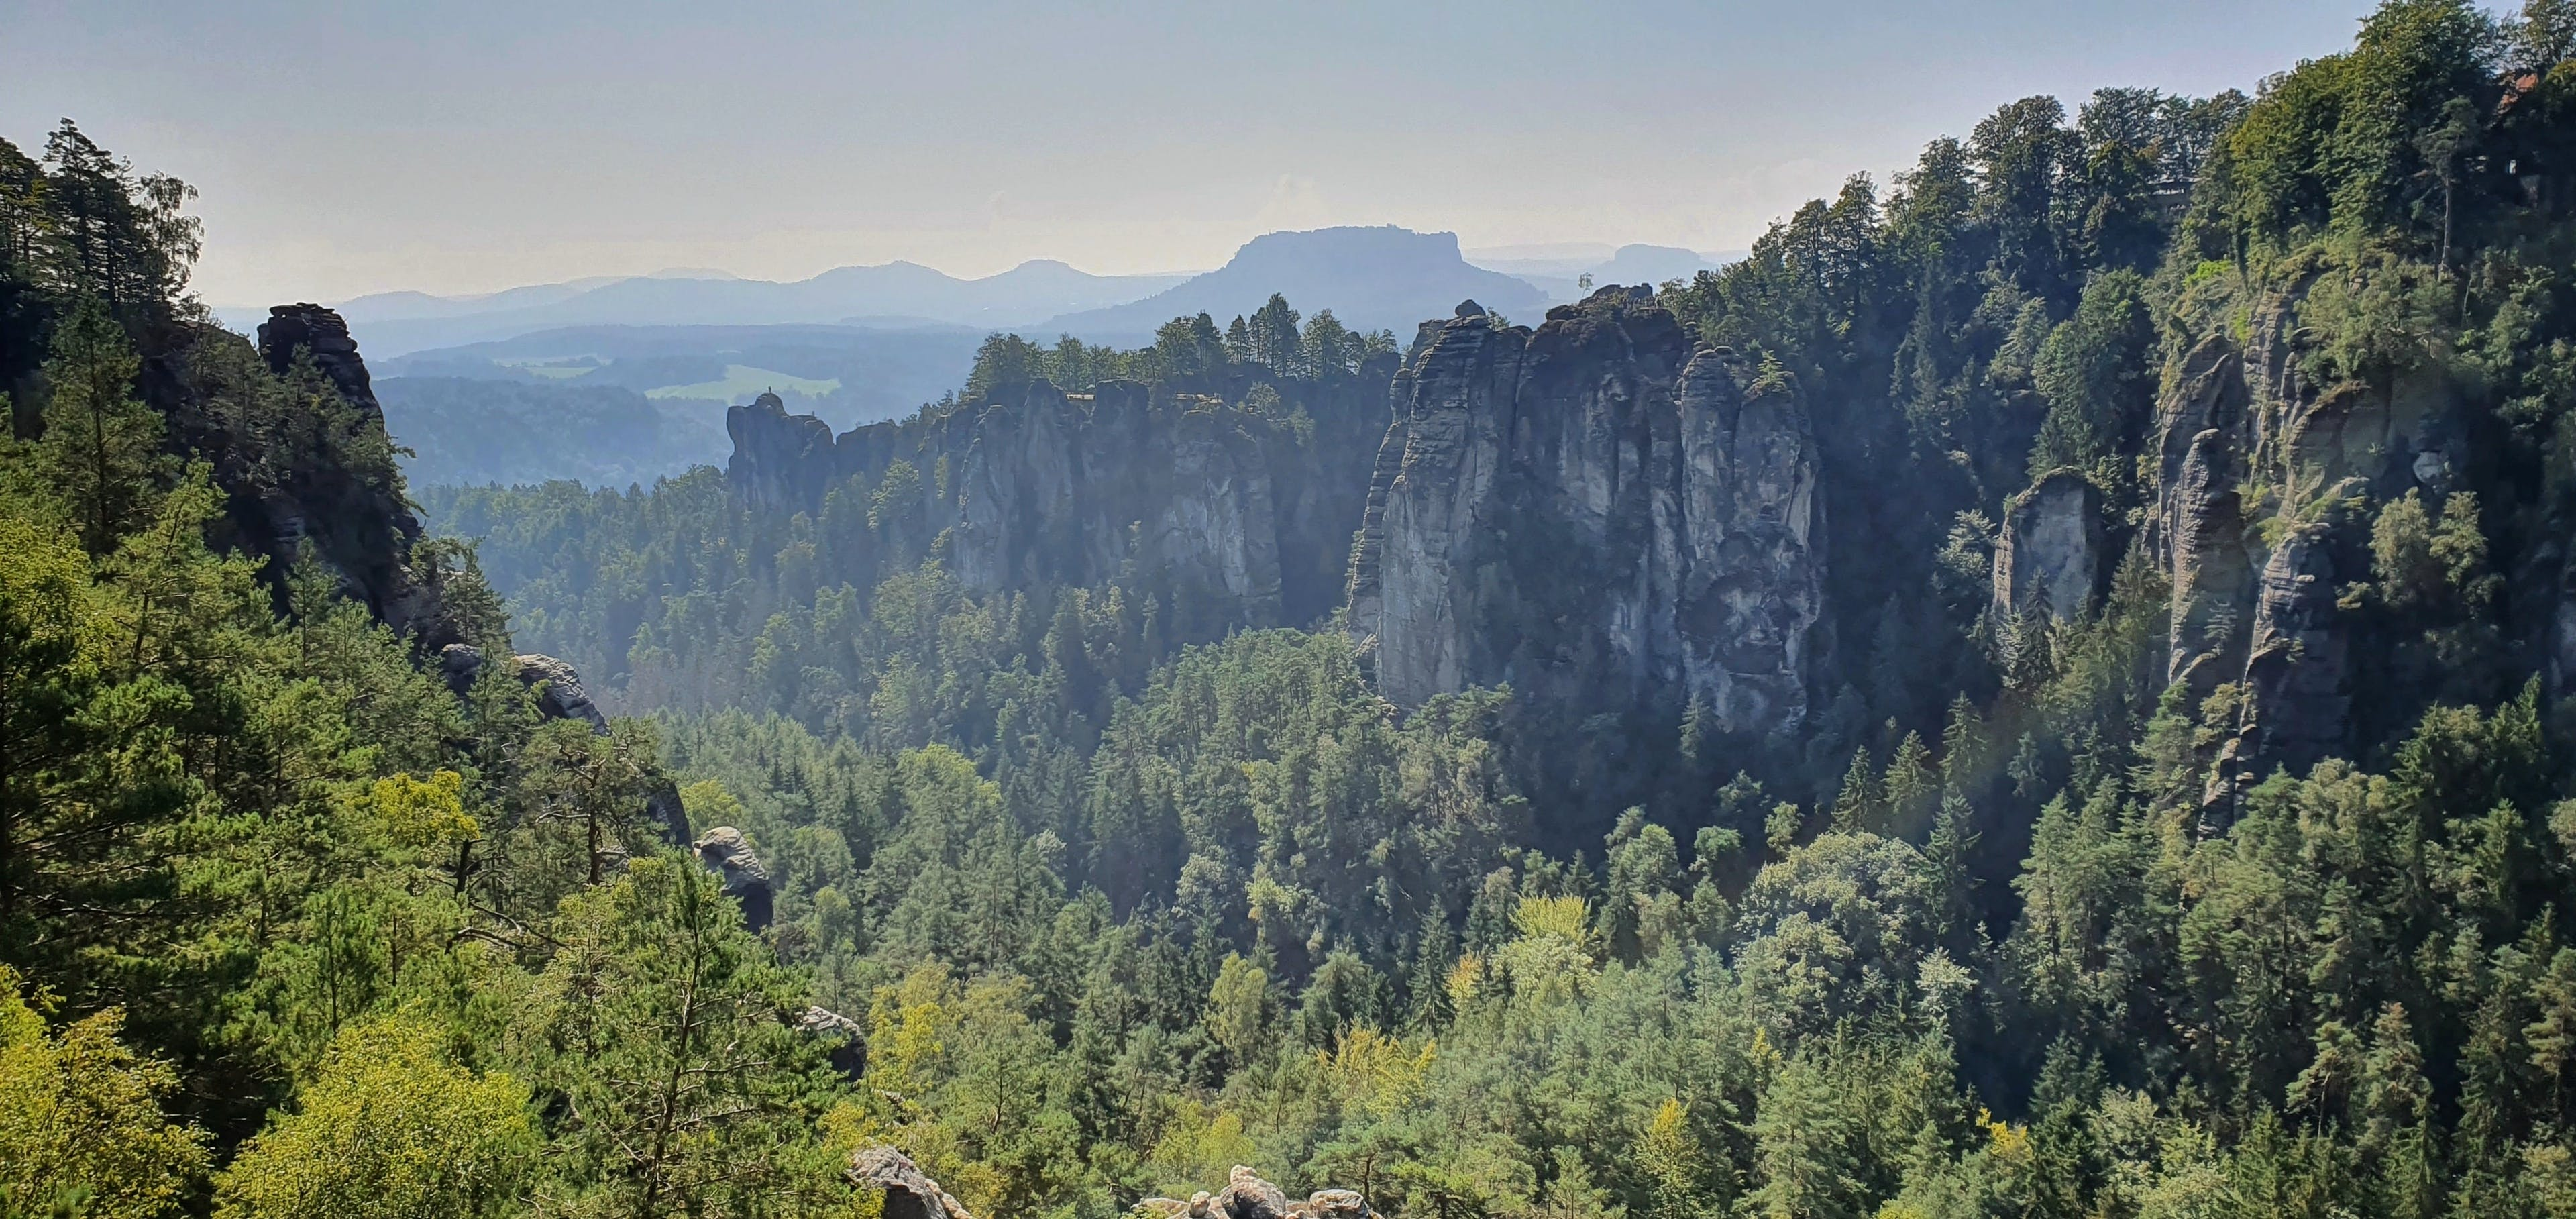 The Mountains of Saxony, East Germany